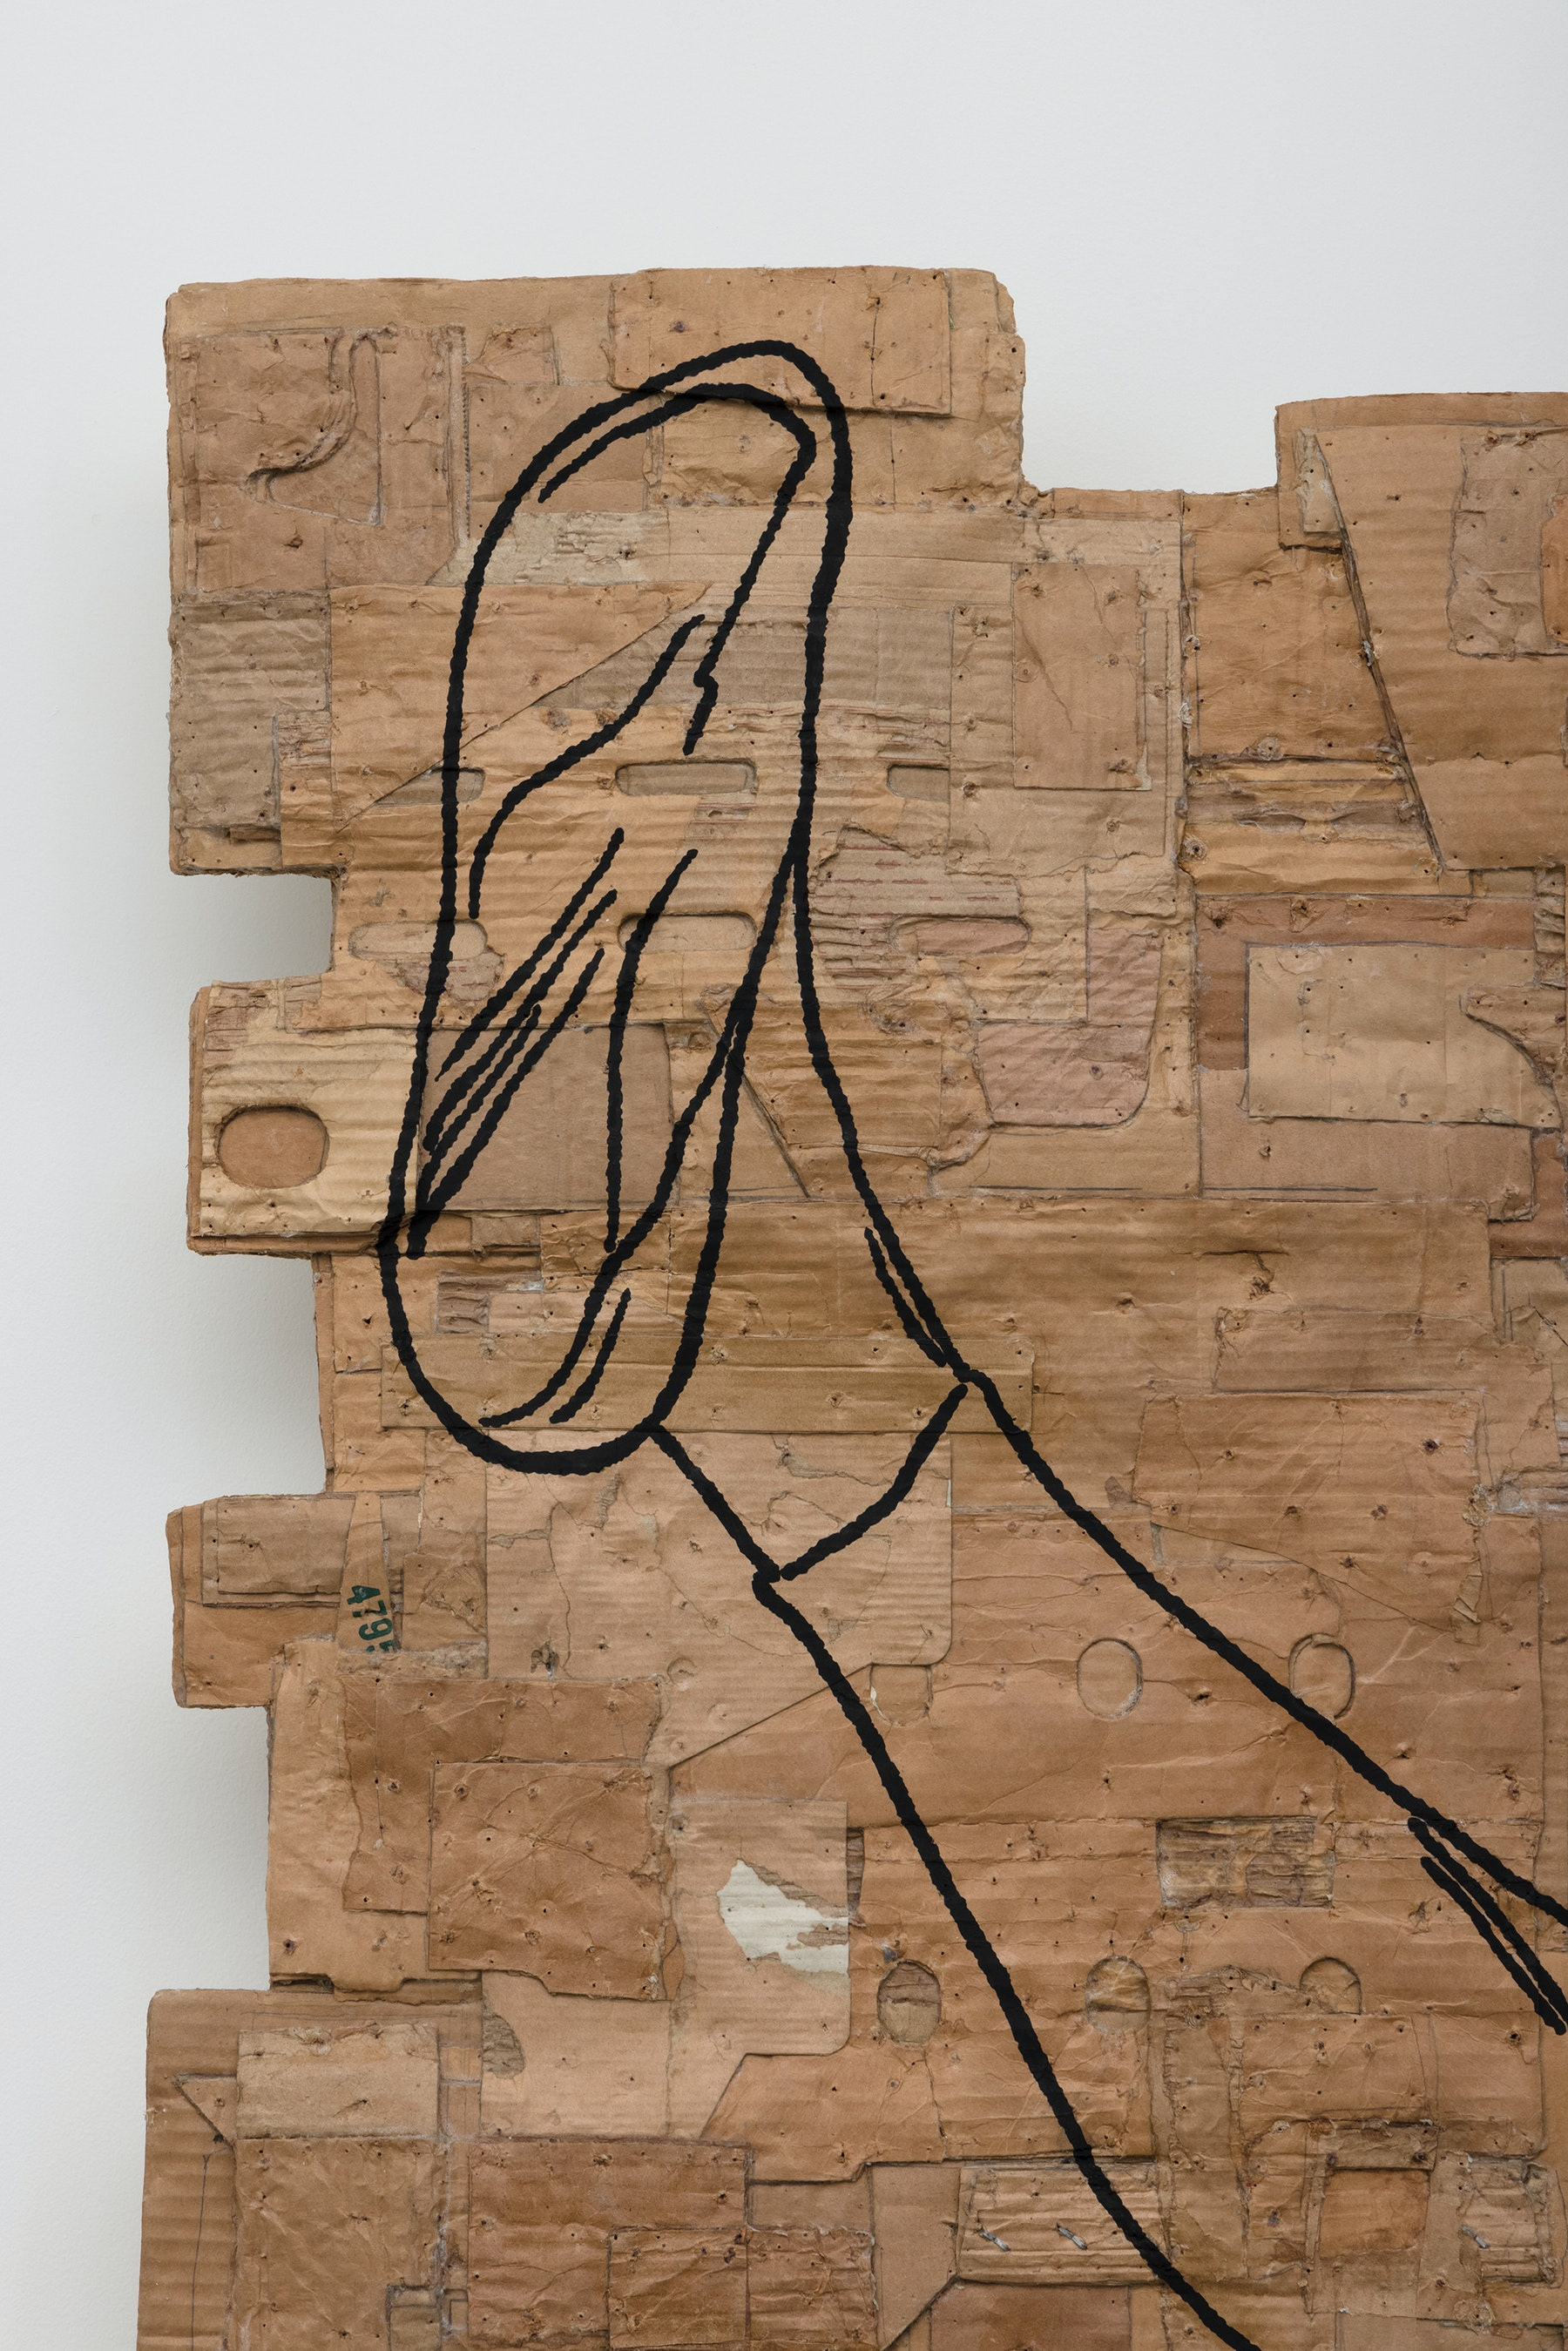 """Andrea Bowers """"Fighting Women, Linda, Mae Geri Kekomi (Thrust Front Kick),"""" 2021 Acrylic and pigment ink on cardboard 96"""" x 60 ¹⁄₂"""" x 5 ¹⁄₂"""" [HxWxD] (243.84 x 153.67 x 13.97 cm) Inventory #BOW574 Courtesy of the artist and Vielmetter Los Angeles Photo credit: Jeff McLane"""